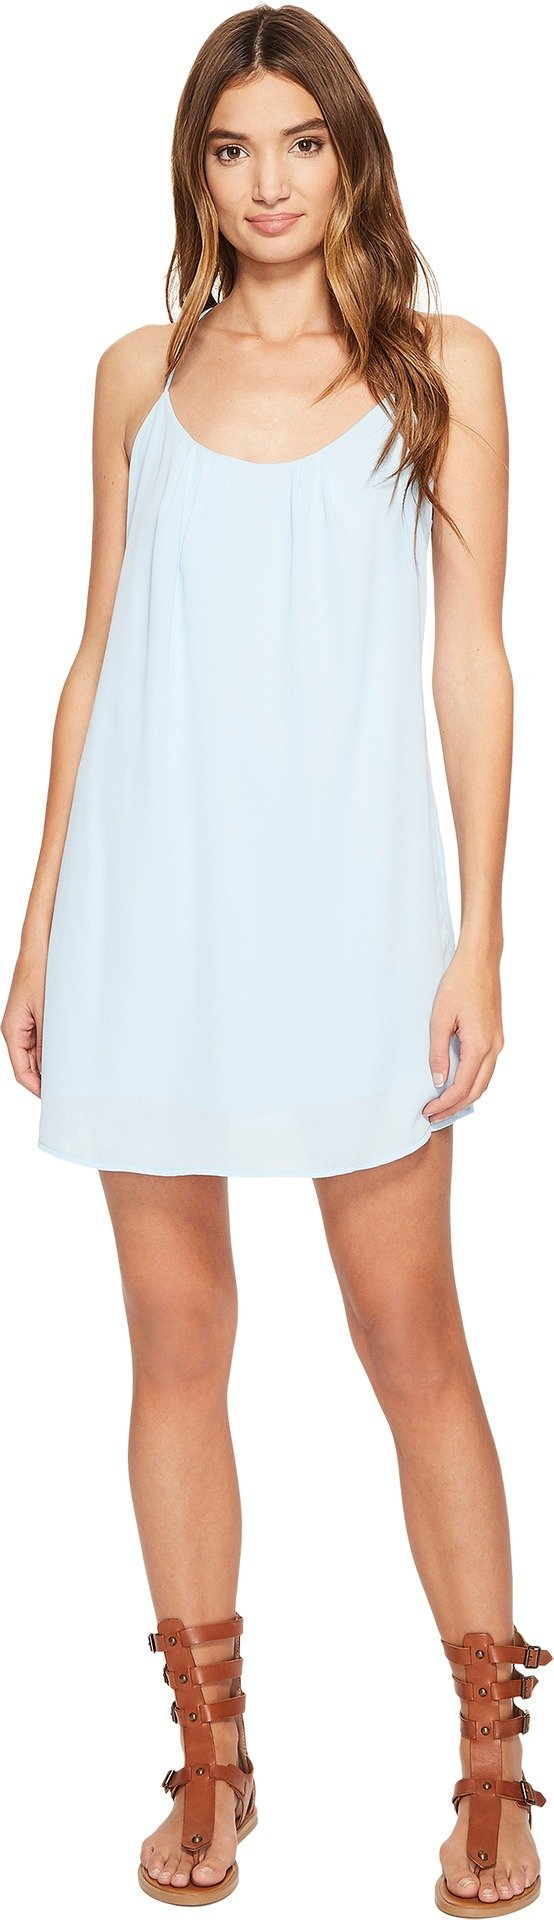 Lucy Love Women's Take Me to Dinner, Blue Cloud, Large